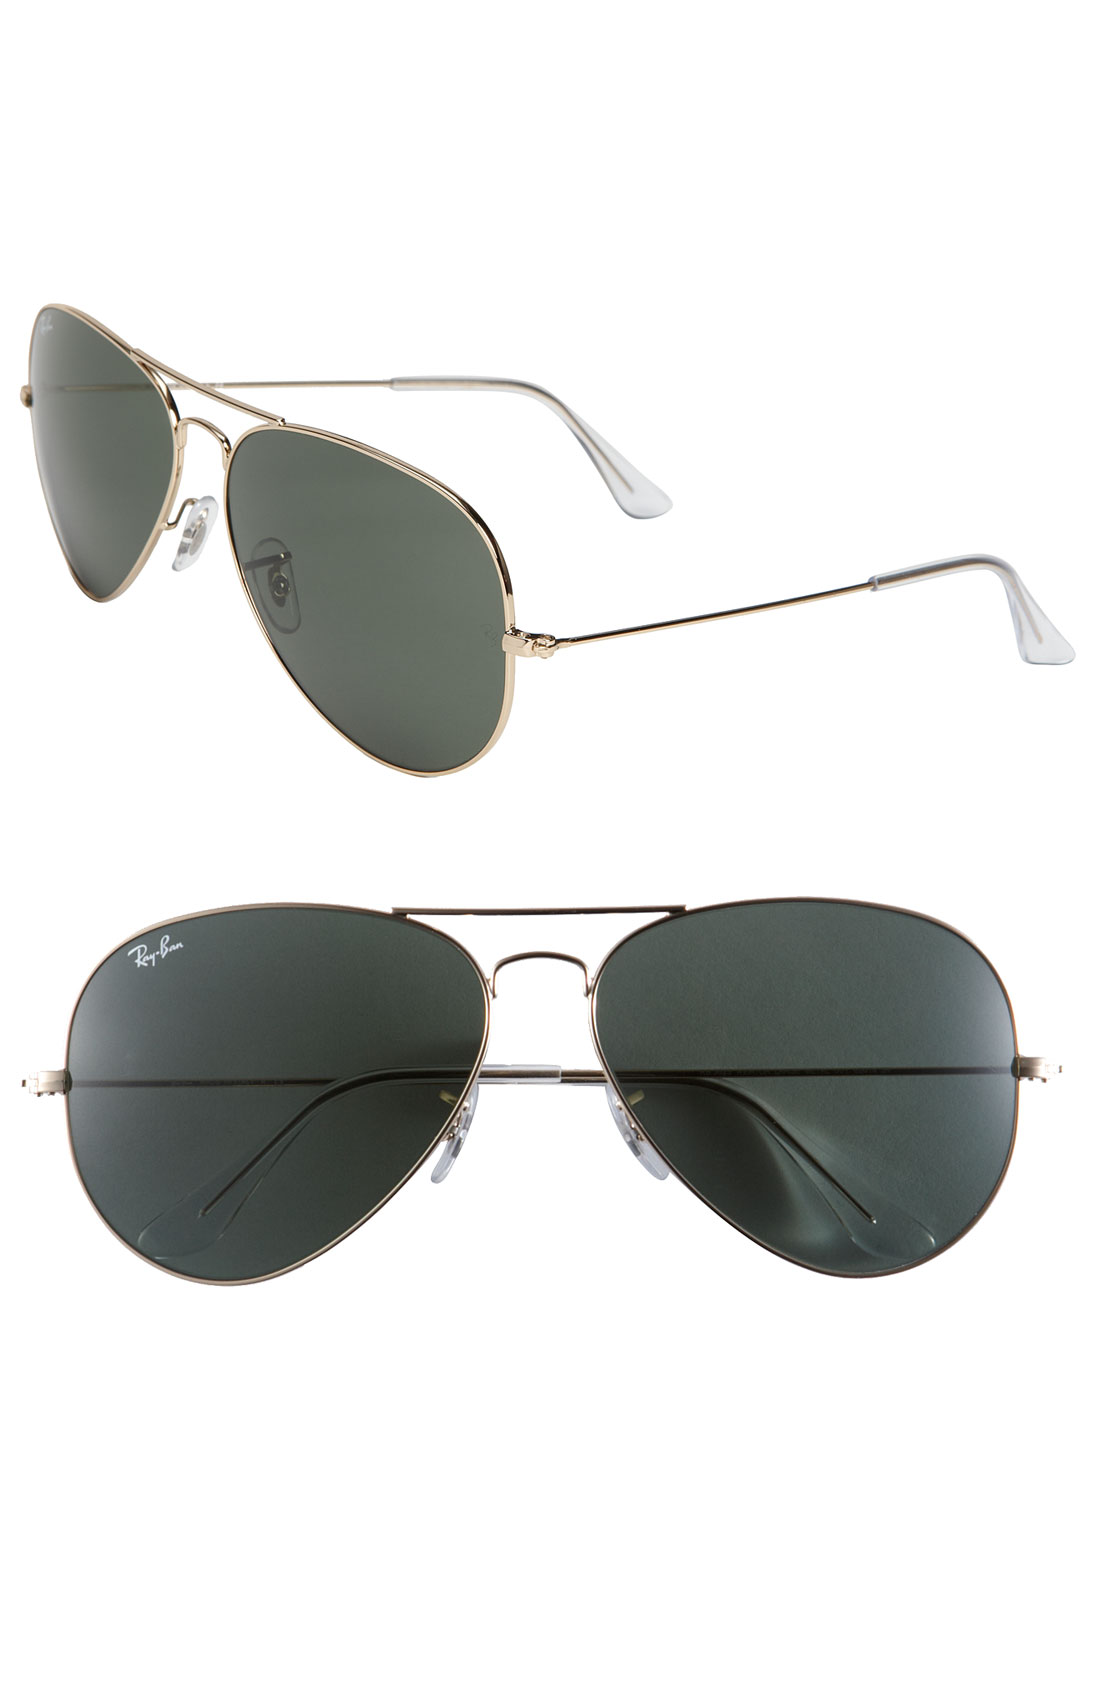 Ray Ban Large Original Aviator 62mm Sunglasses In Gold